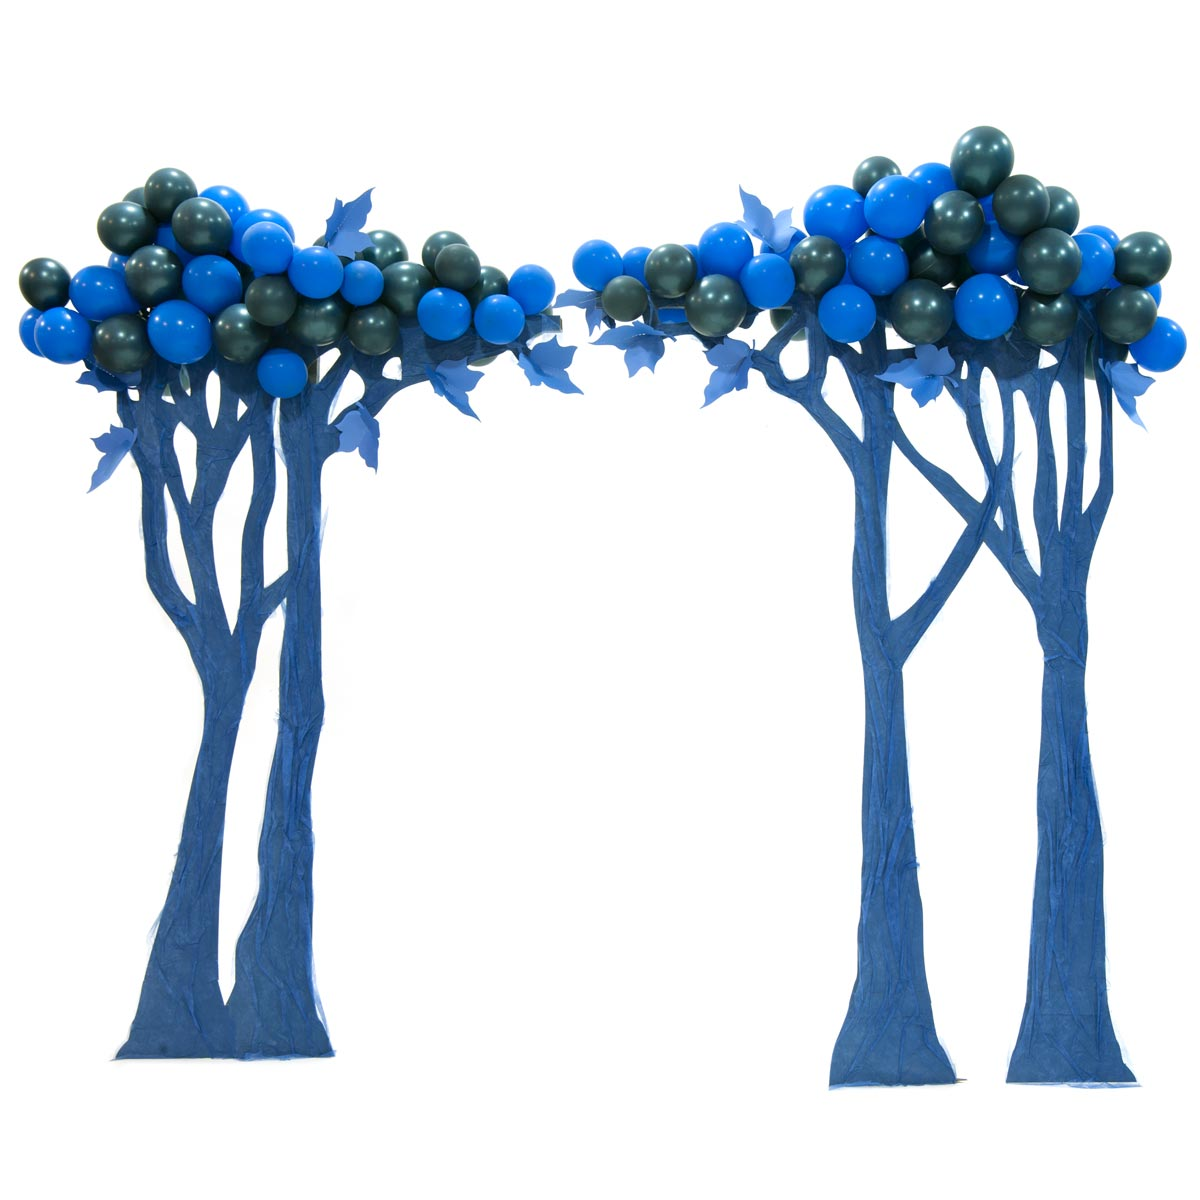 Illusions of Grandeur Balloon Trees Kit (set of 2)